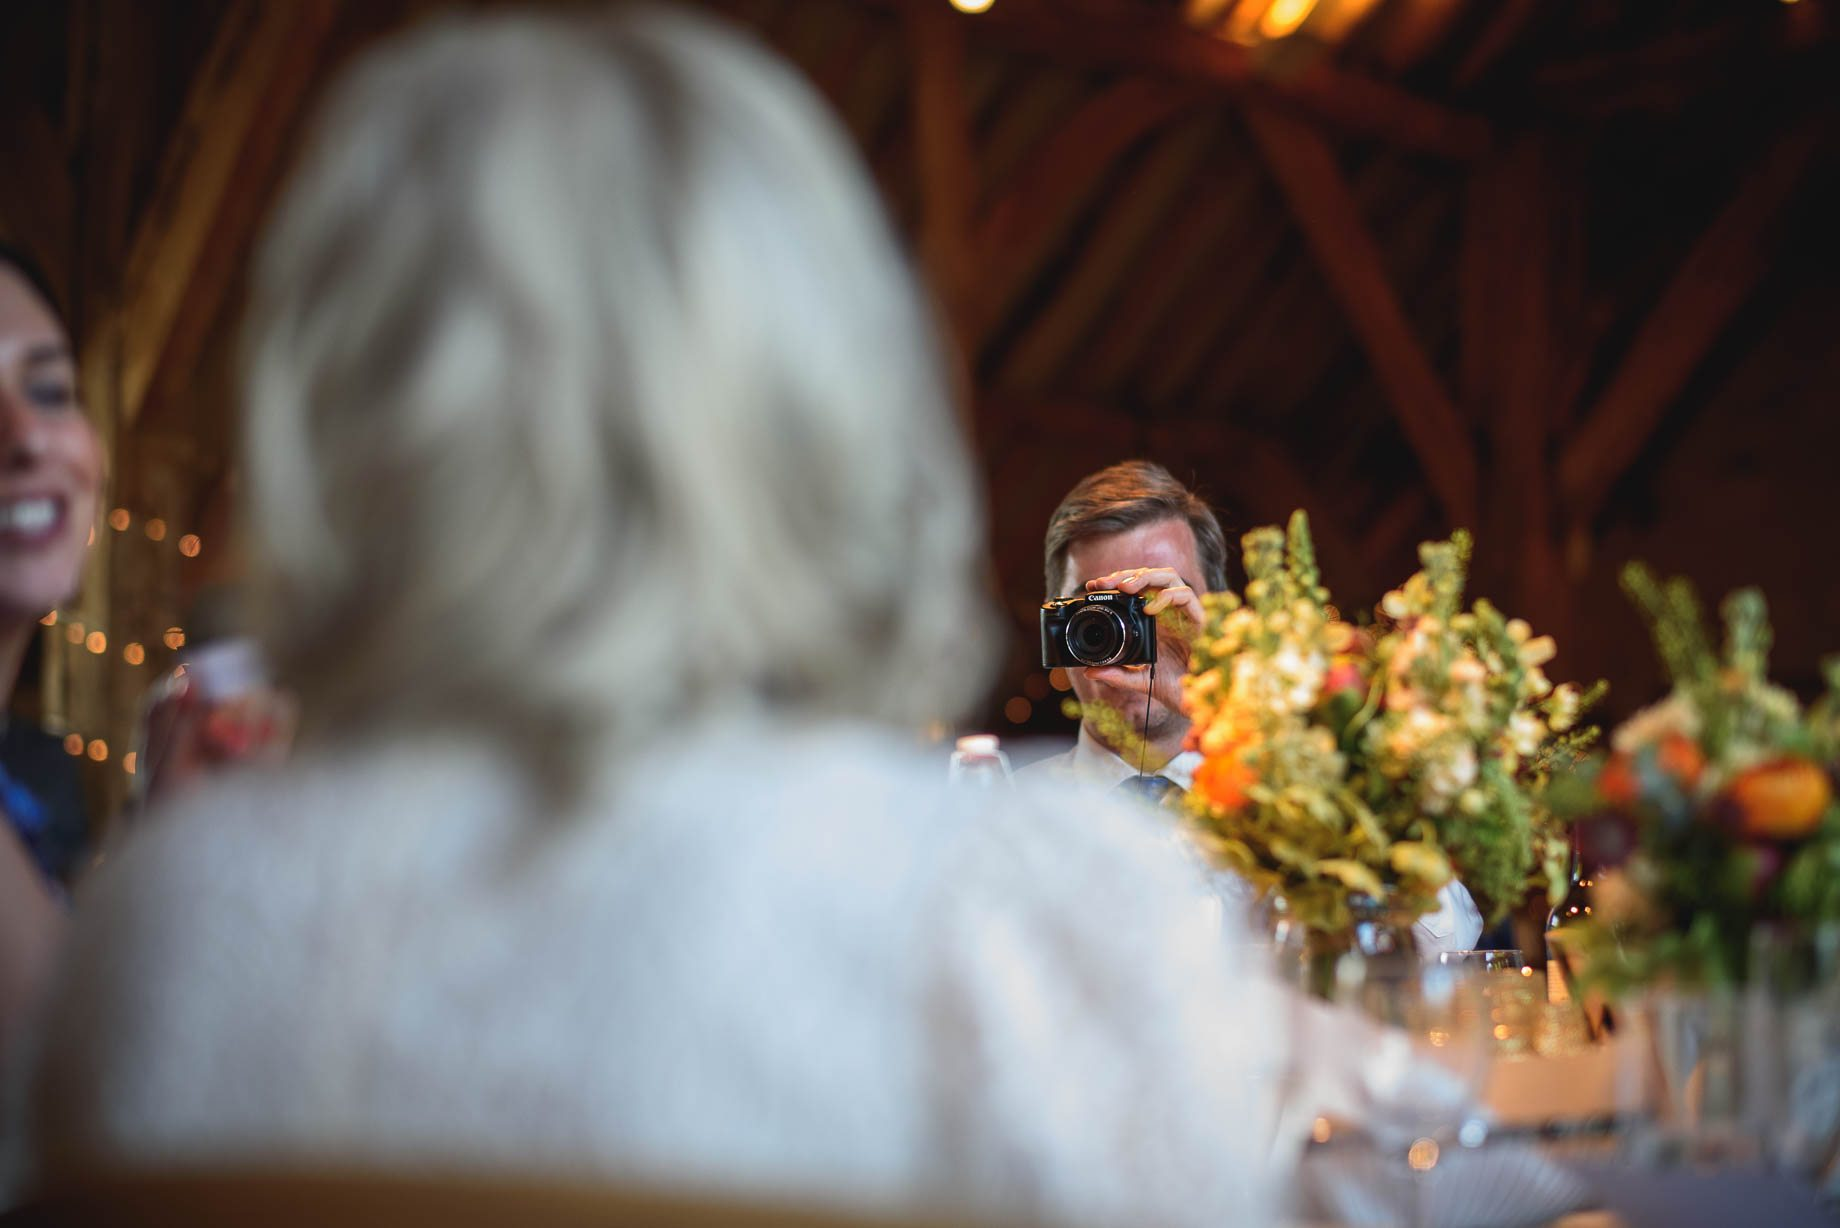 Bury Court Barn wedding photography by Guy Collier - Jo and Jamie (129 of 160)